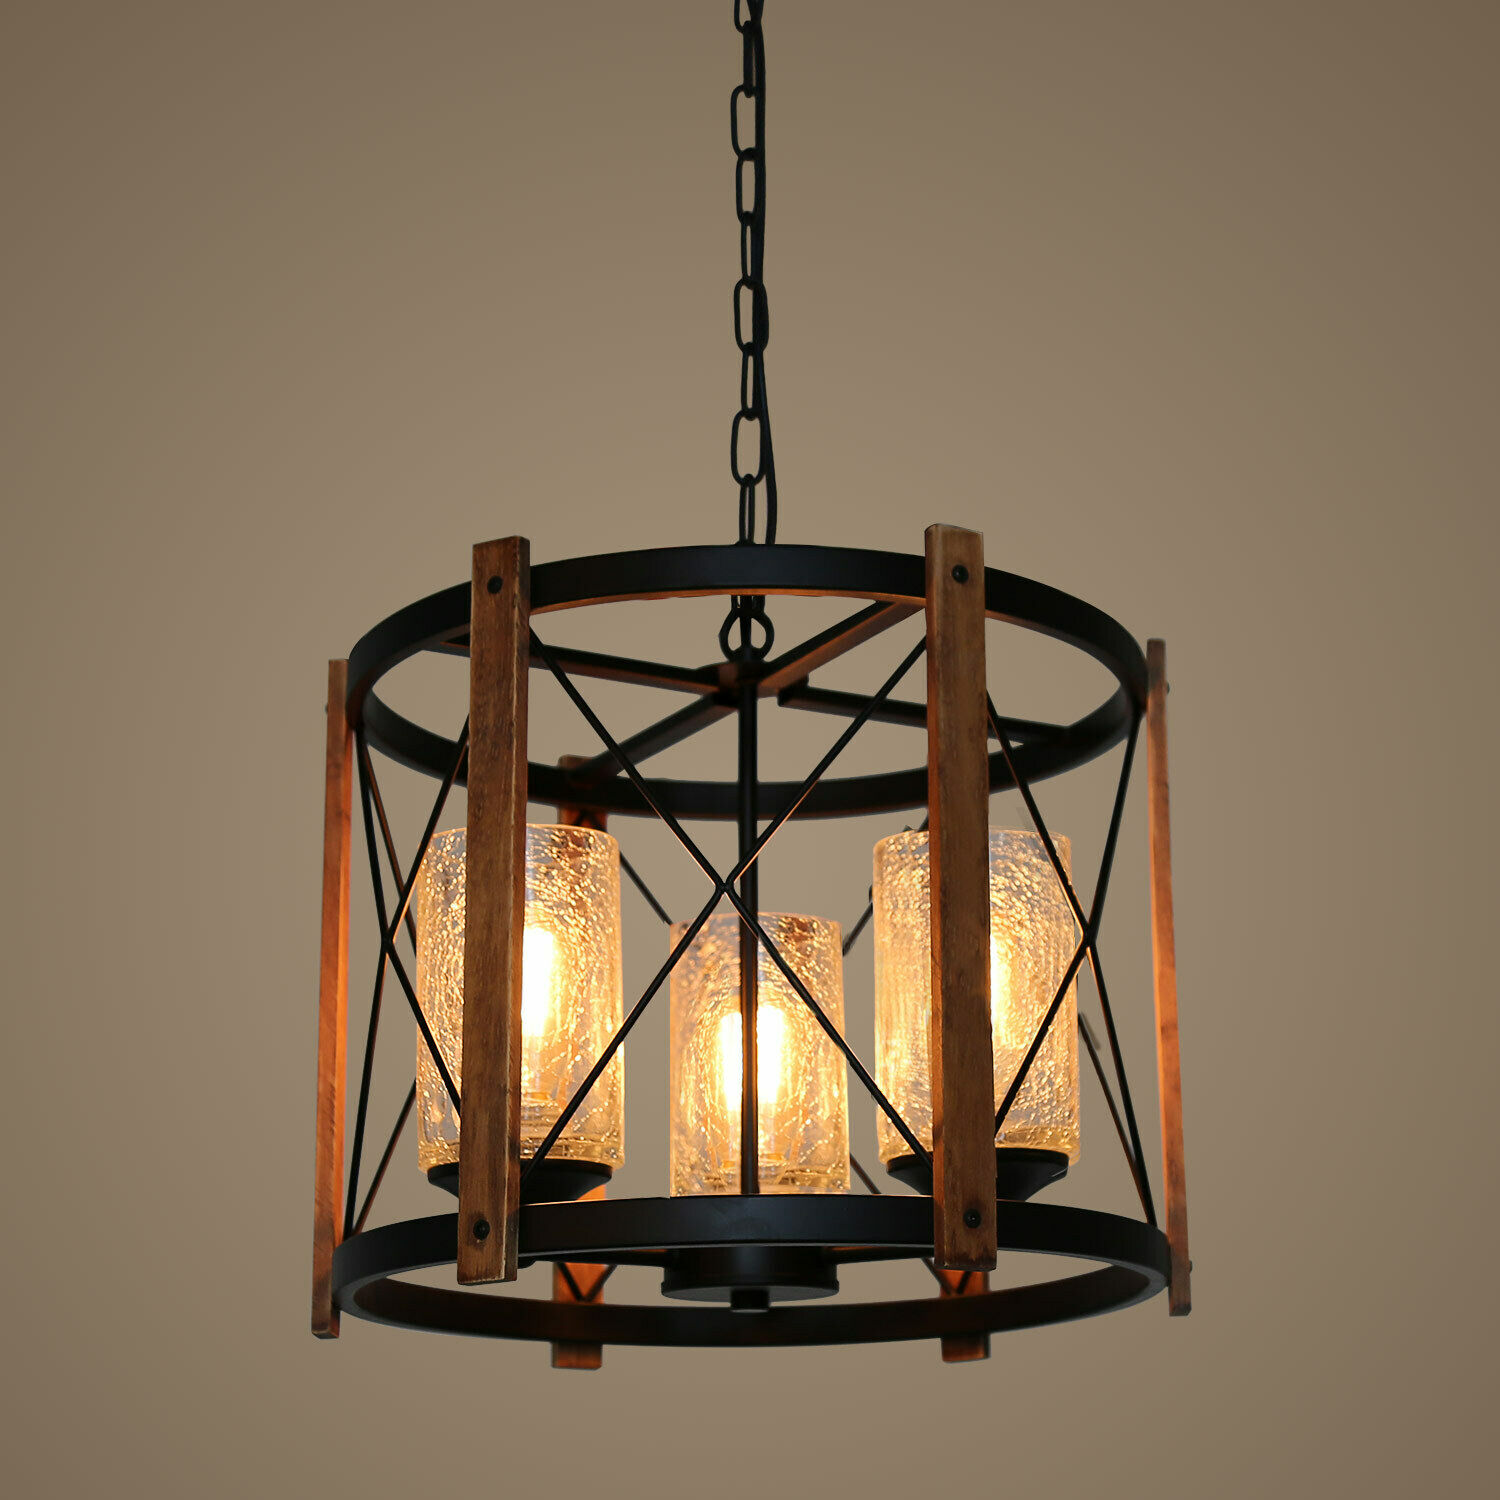 Wood Farmhouse Rustic Chandelier Vintage Industrial Hanging Light 3 Lights Ebay